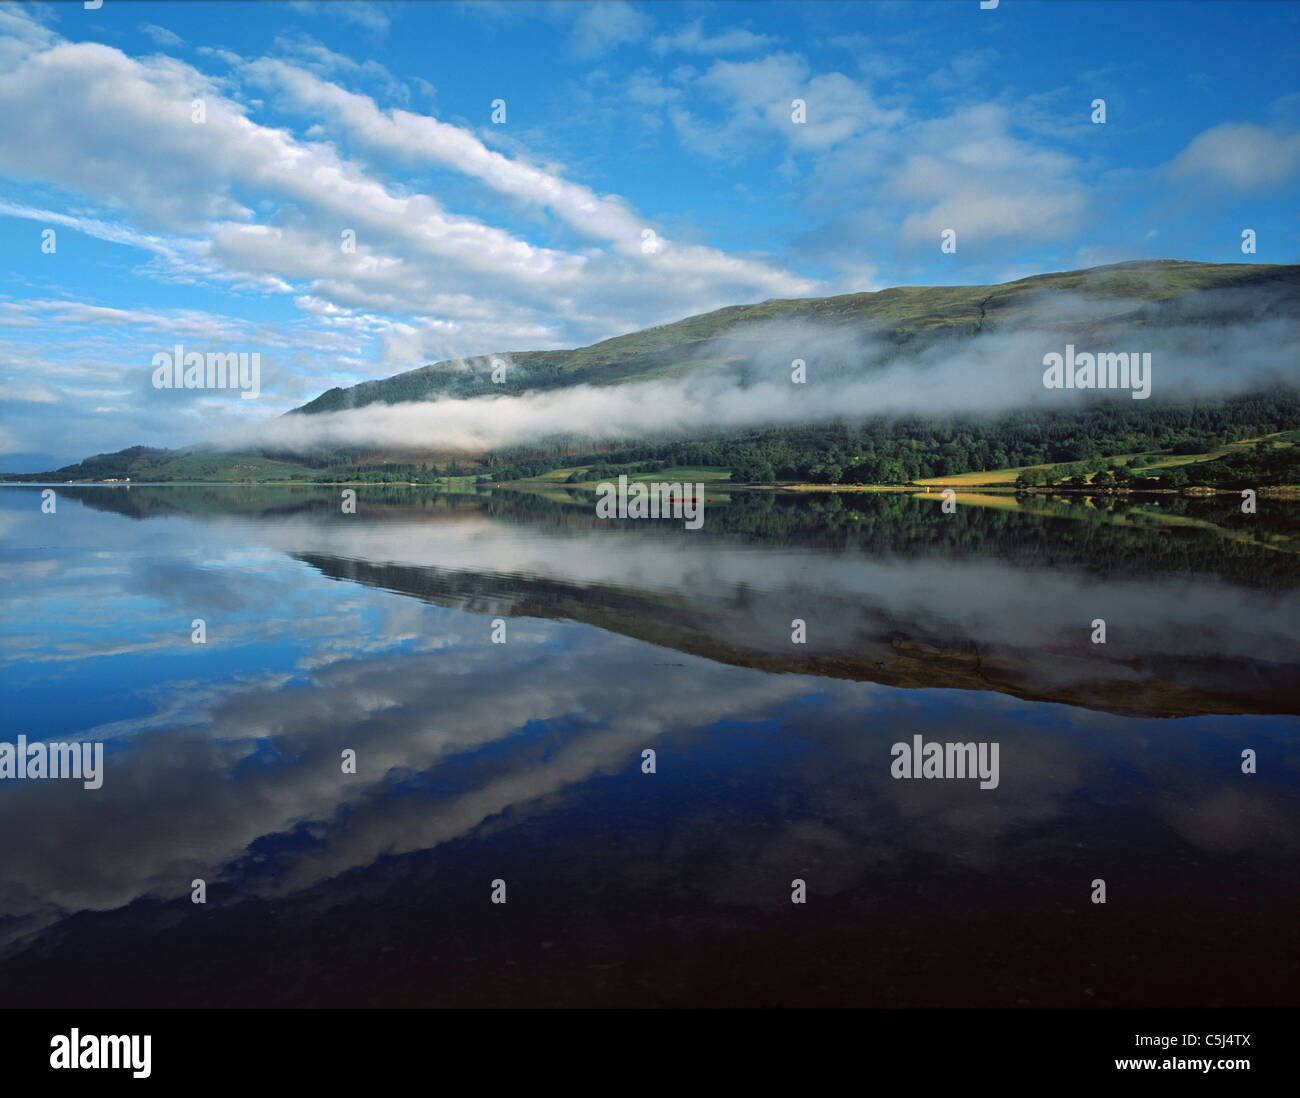 Early morning mist lies along the hill-slopes on the north shore of Loch Leven seen from Invercoe, Glencoe, Scottish - Stock Image